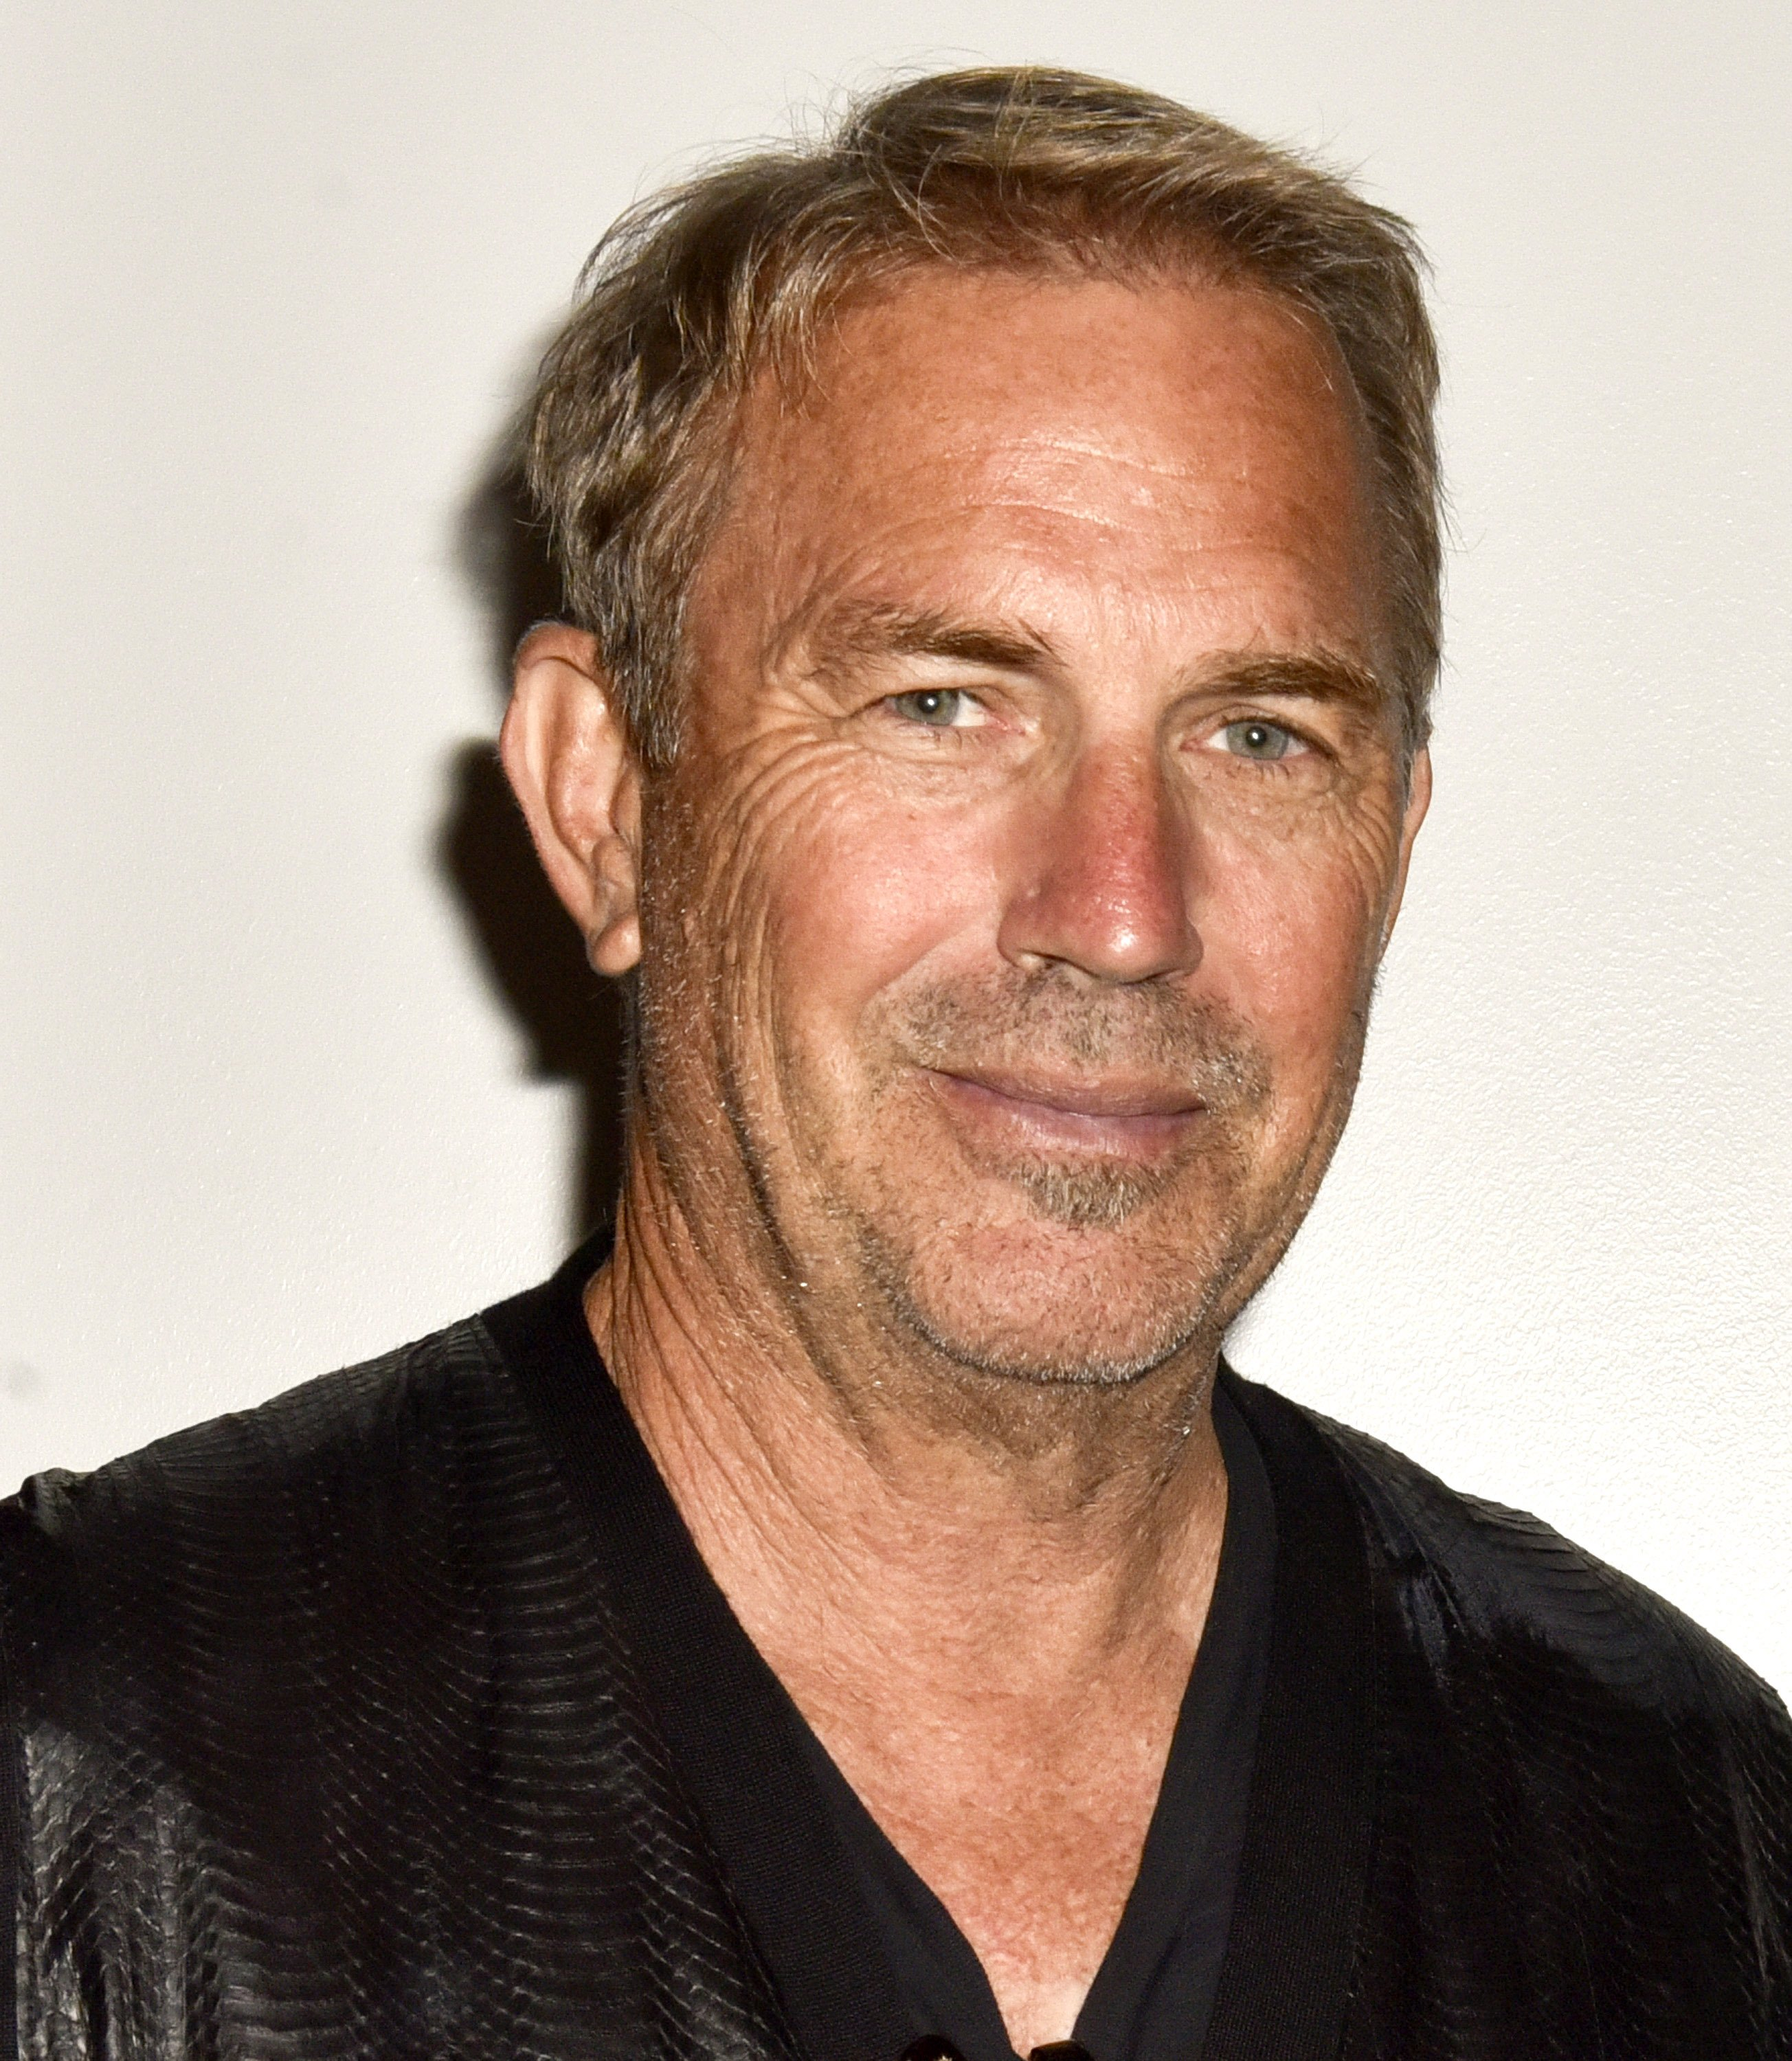 Kevin Costner at the We Are LA Family Music Festival on September 17, 2016 | Photo: GettyImages